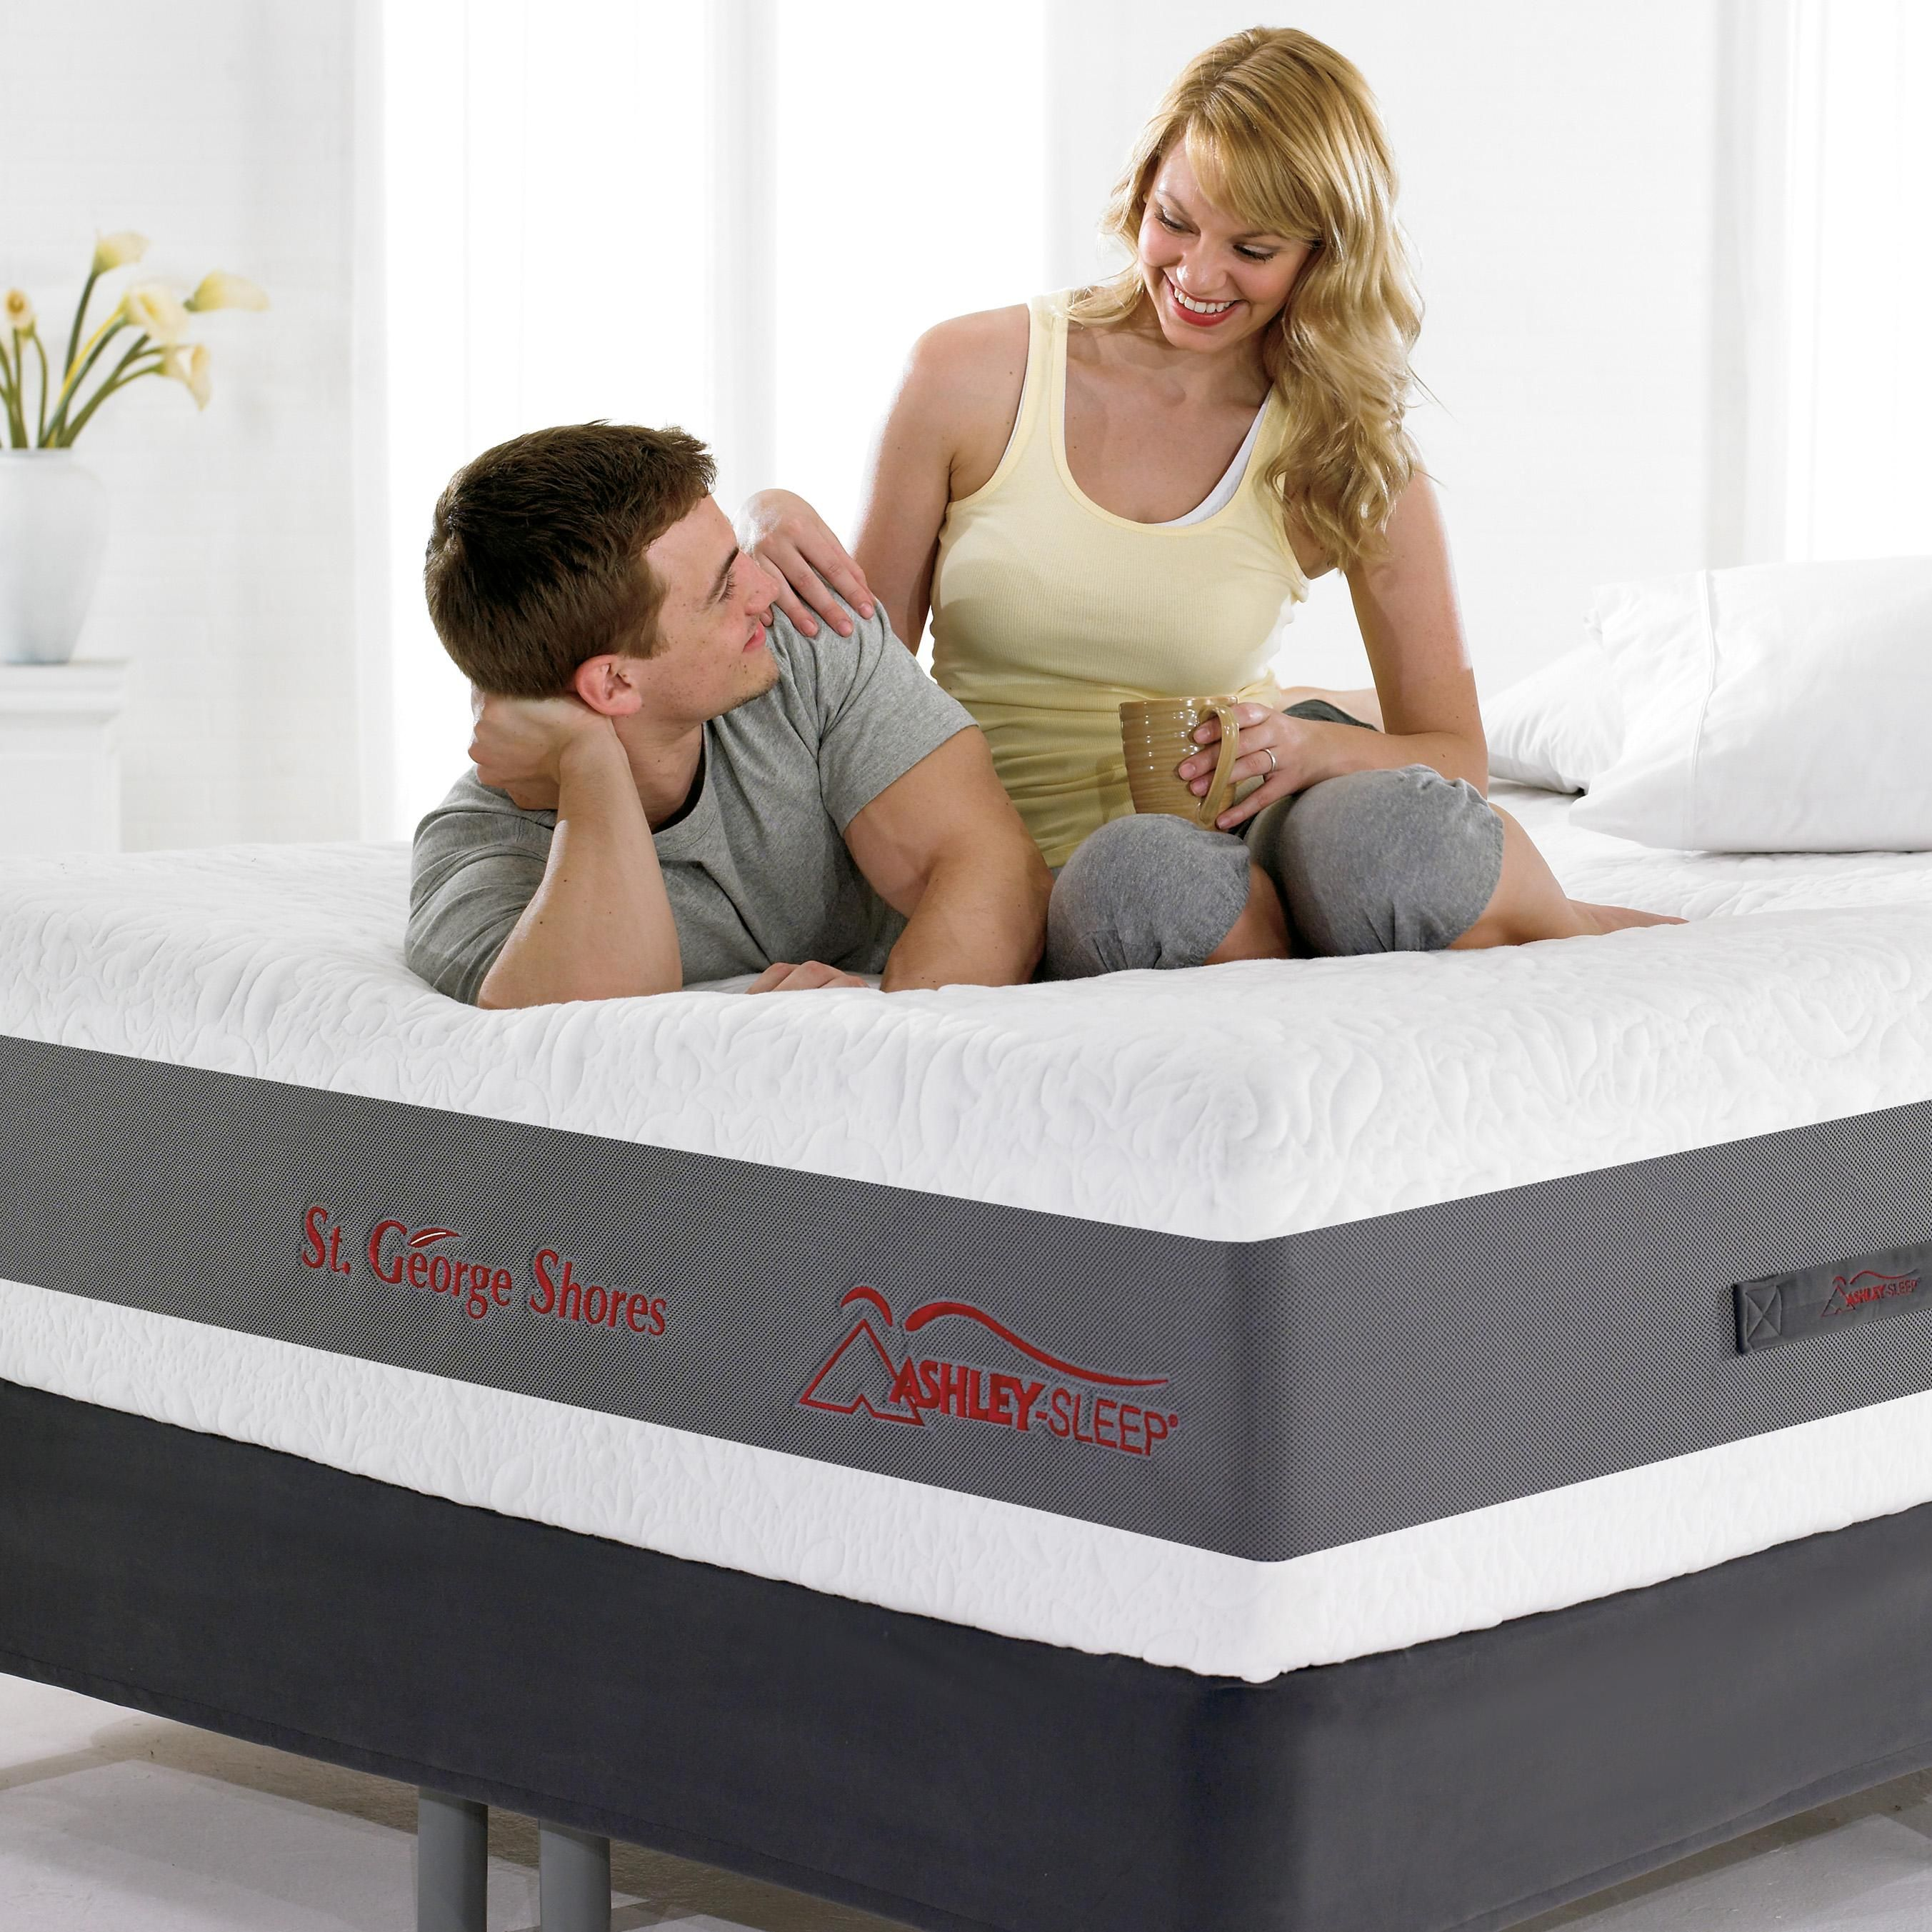 check out our new ashley sleep mattresses all of them have a full